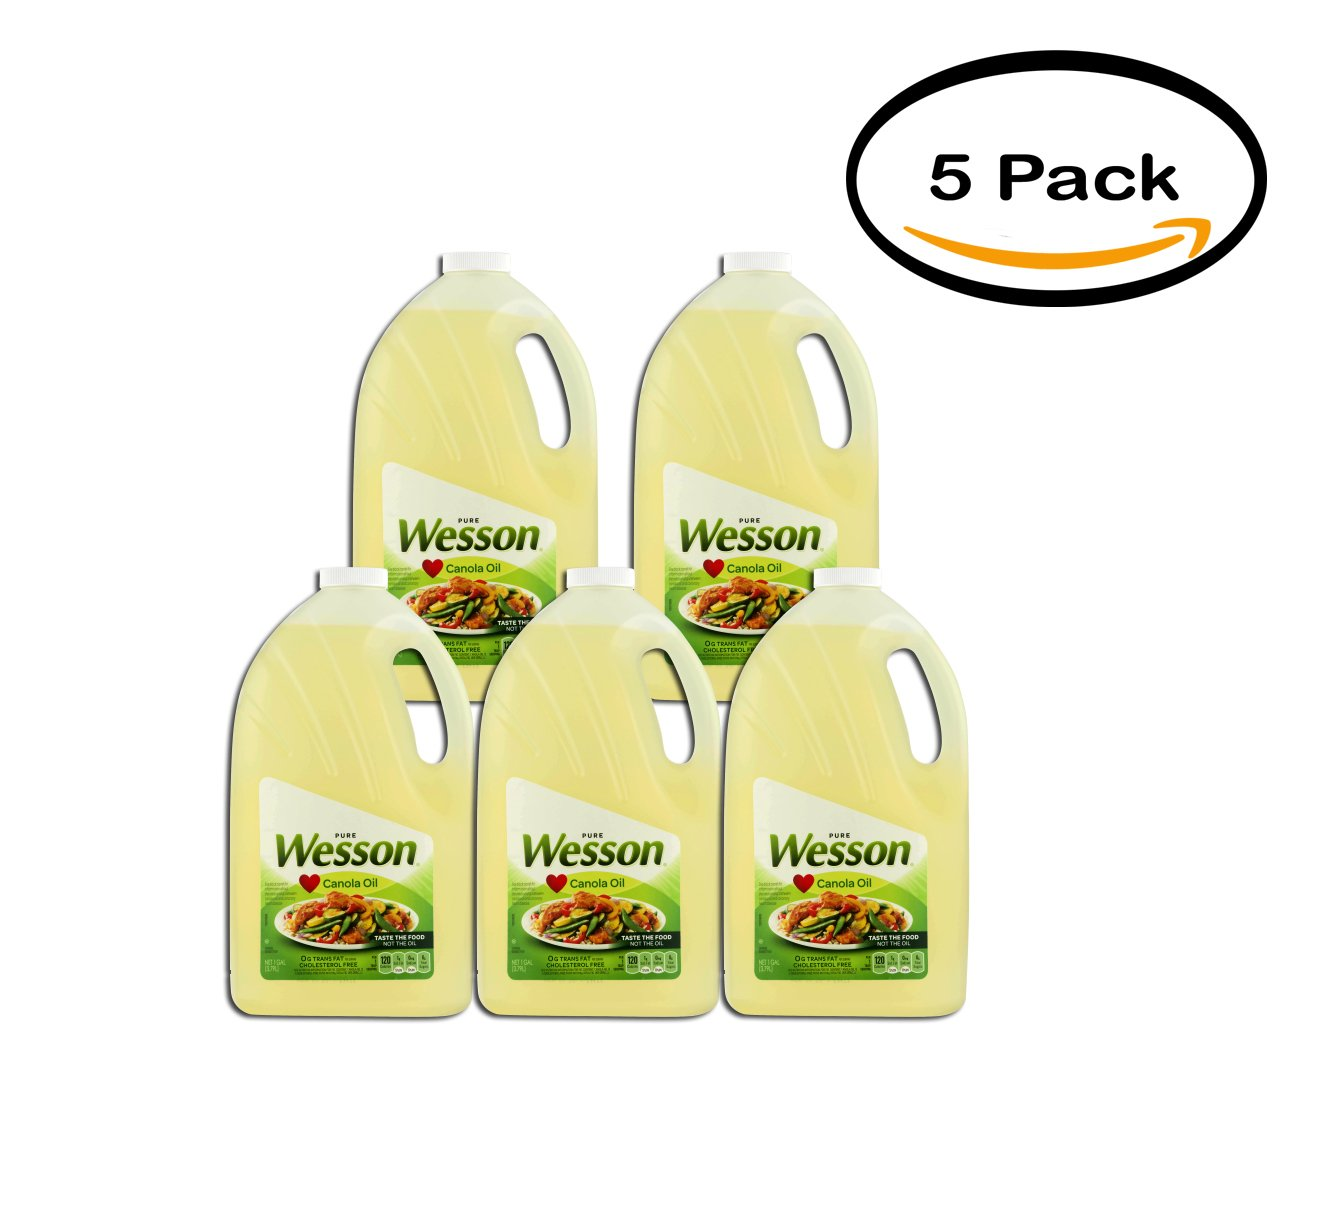 PACK OF 5 - Wesson Pure Canola Oil, 1 Gal